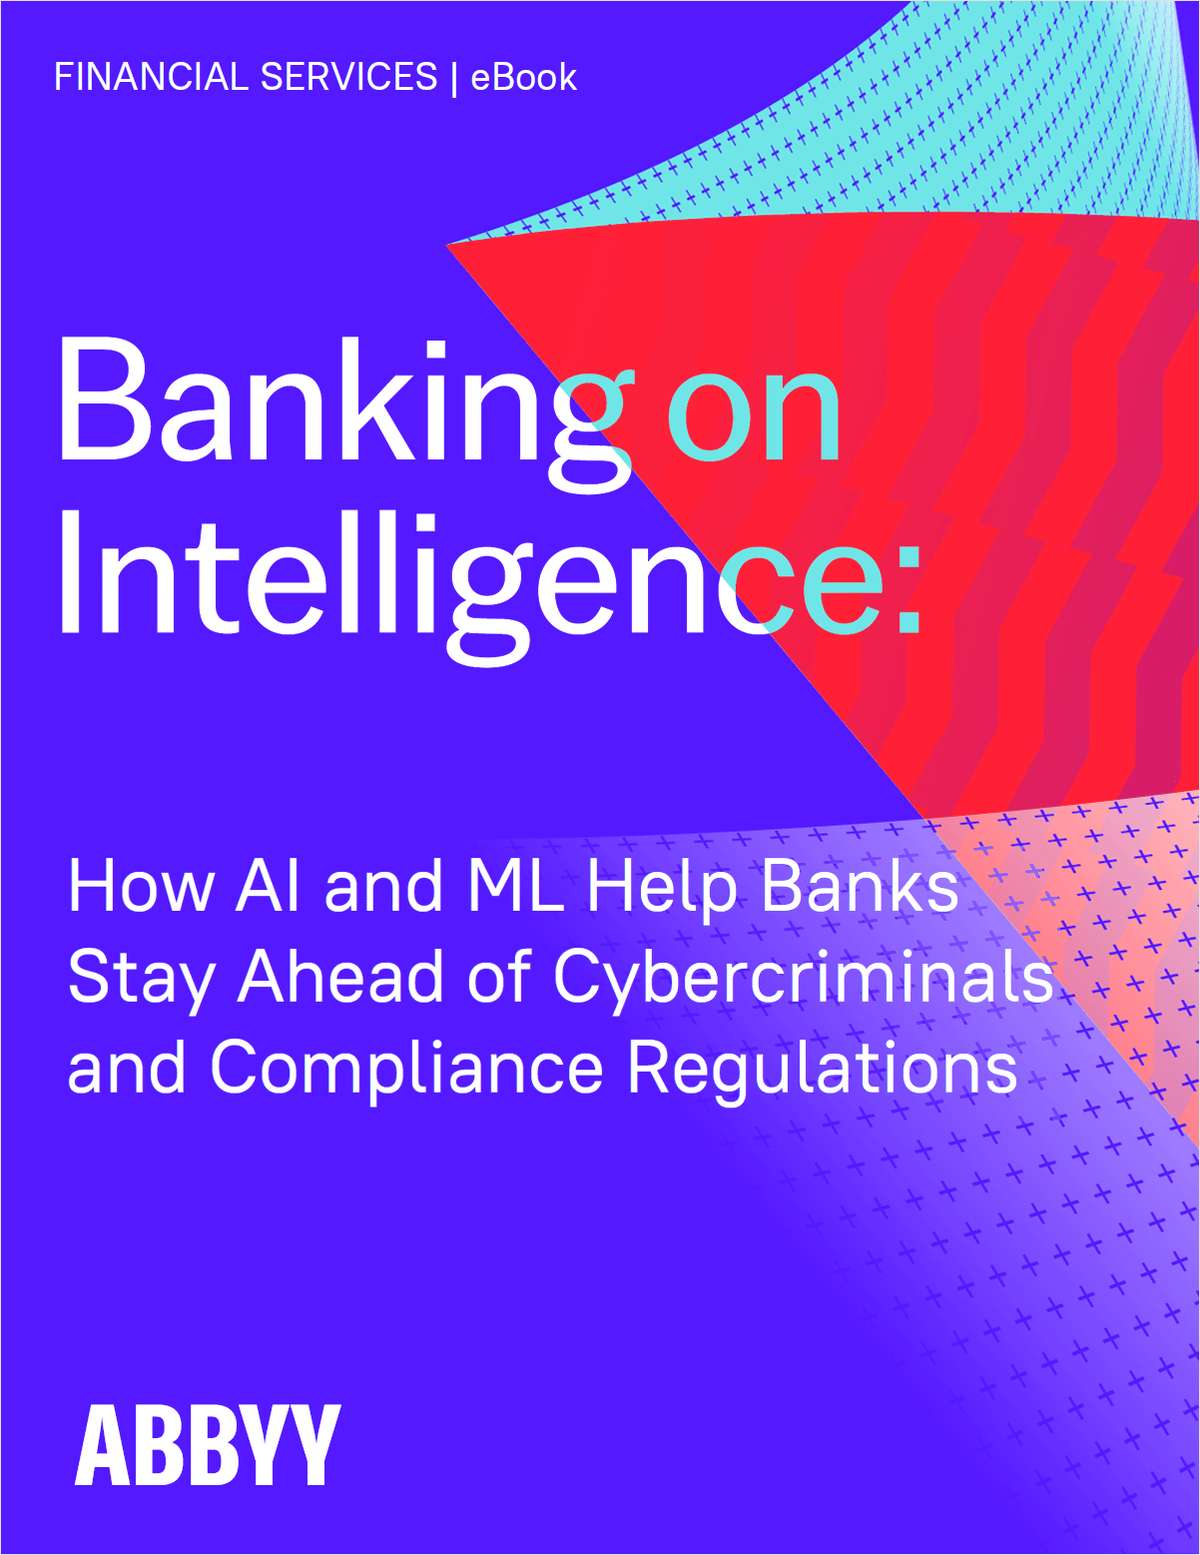 How AI and ML Help Banks Stay Ahead of Cybercriminals and Compliance Regulations